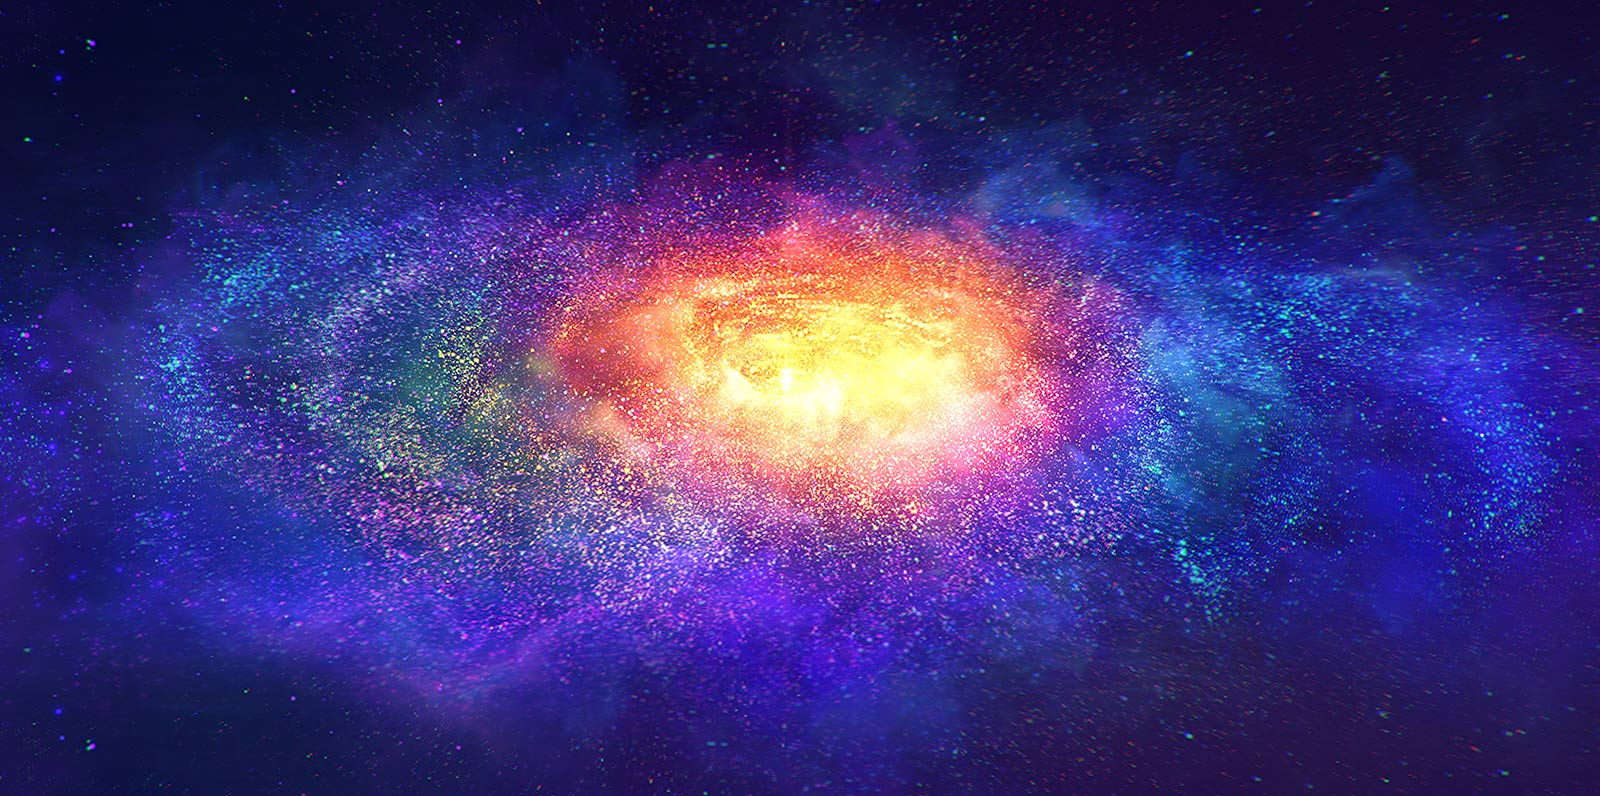 Millions of tiny colored particles in space